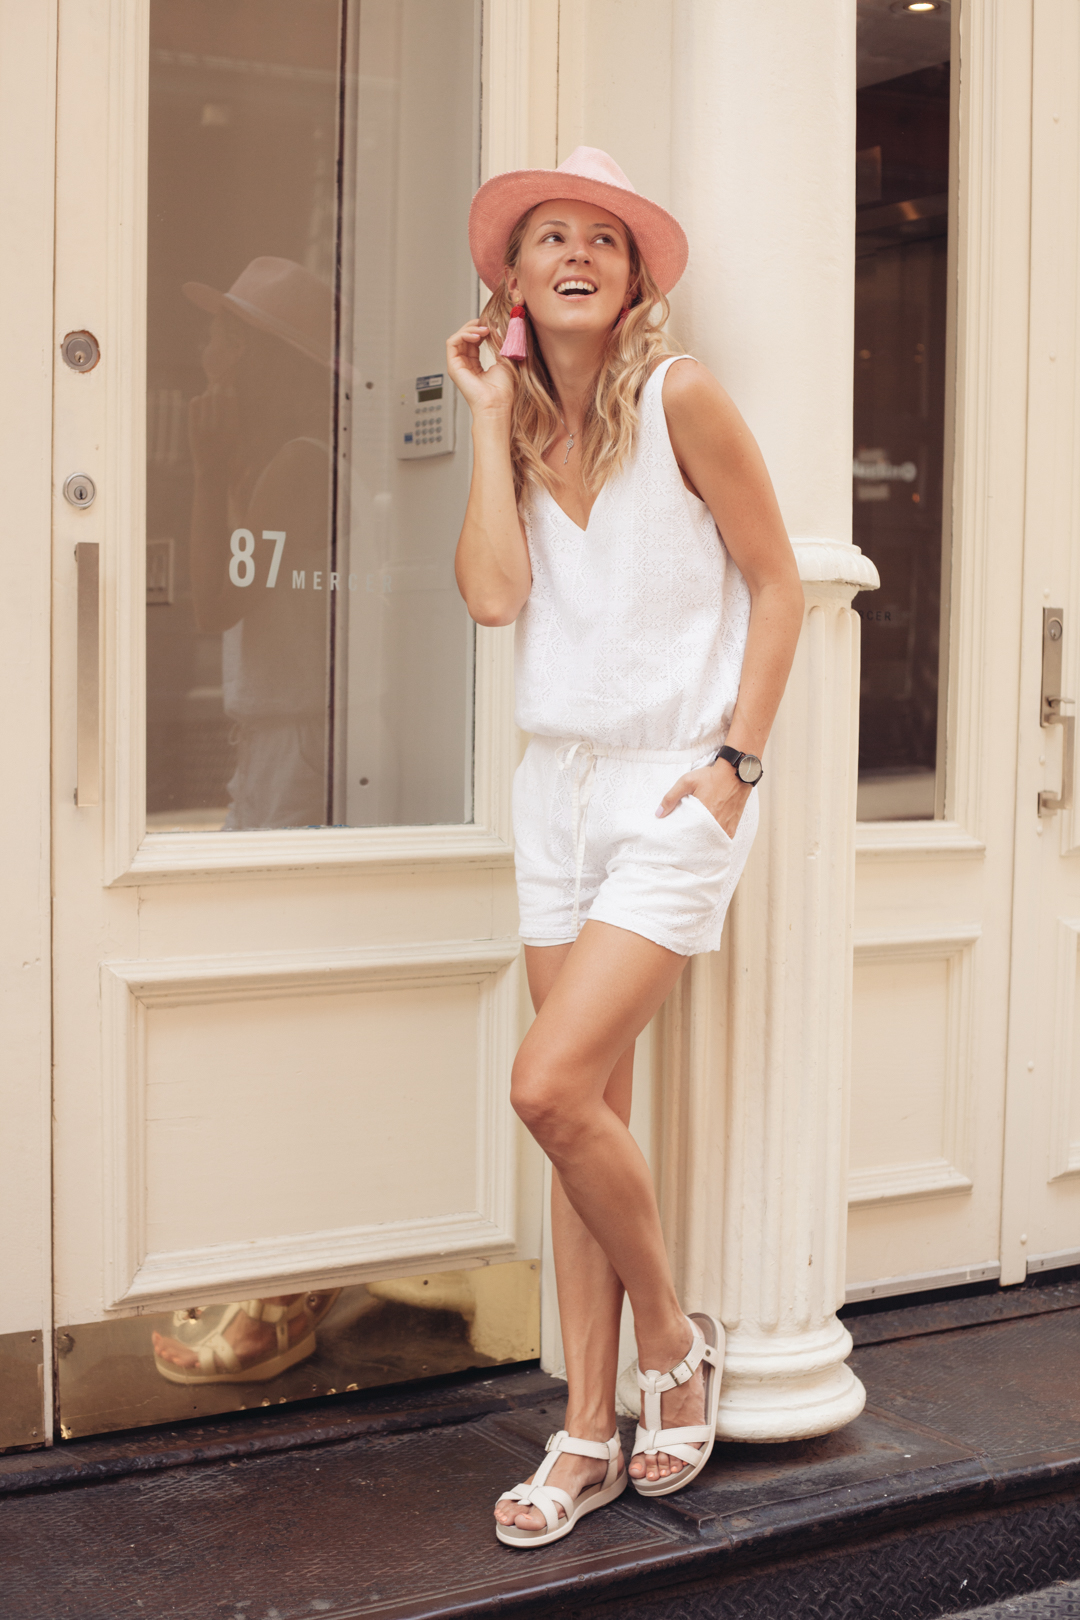 allbuenothings-hushpuppies-comfort-shoes-sandals-boots